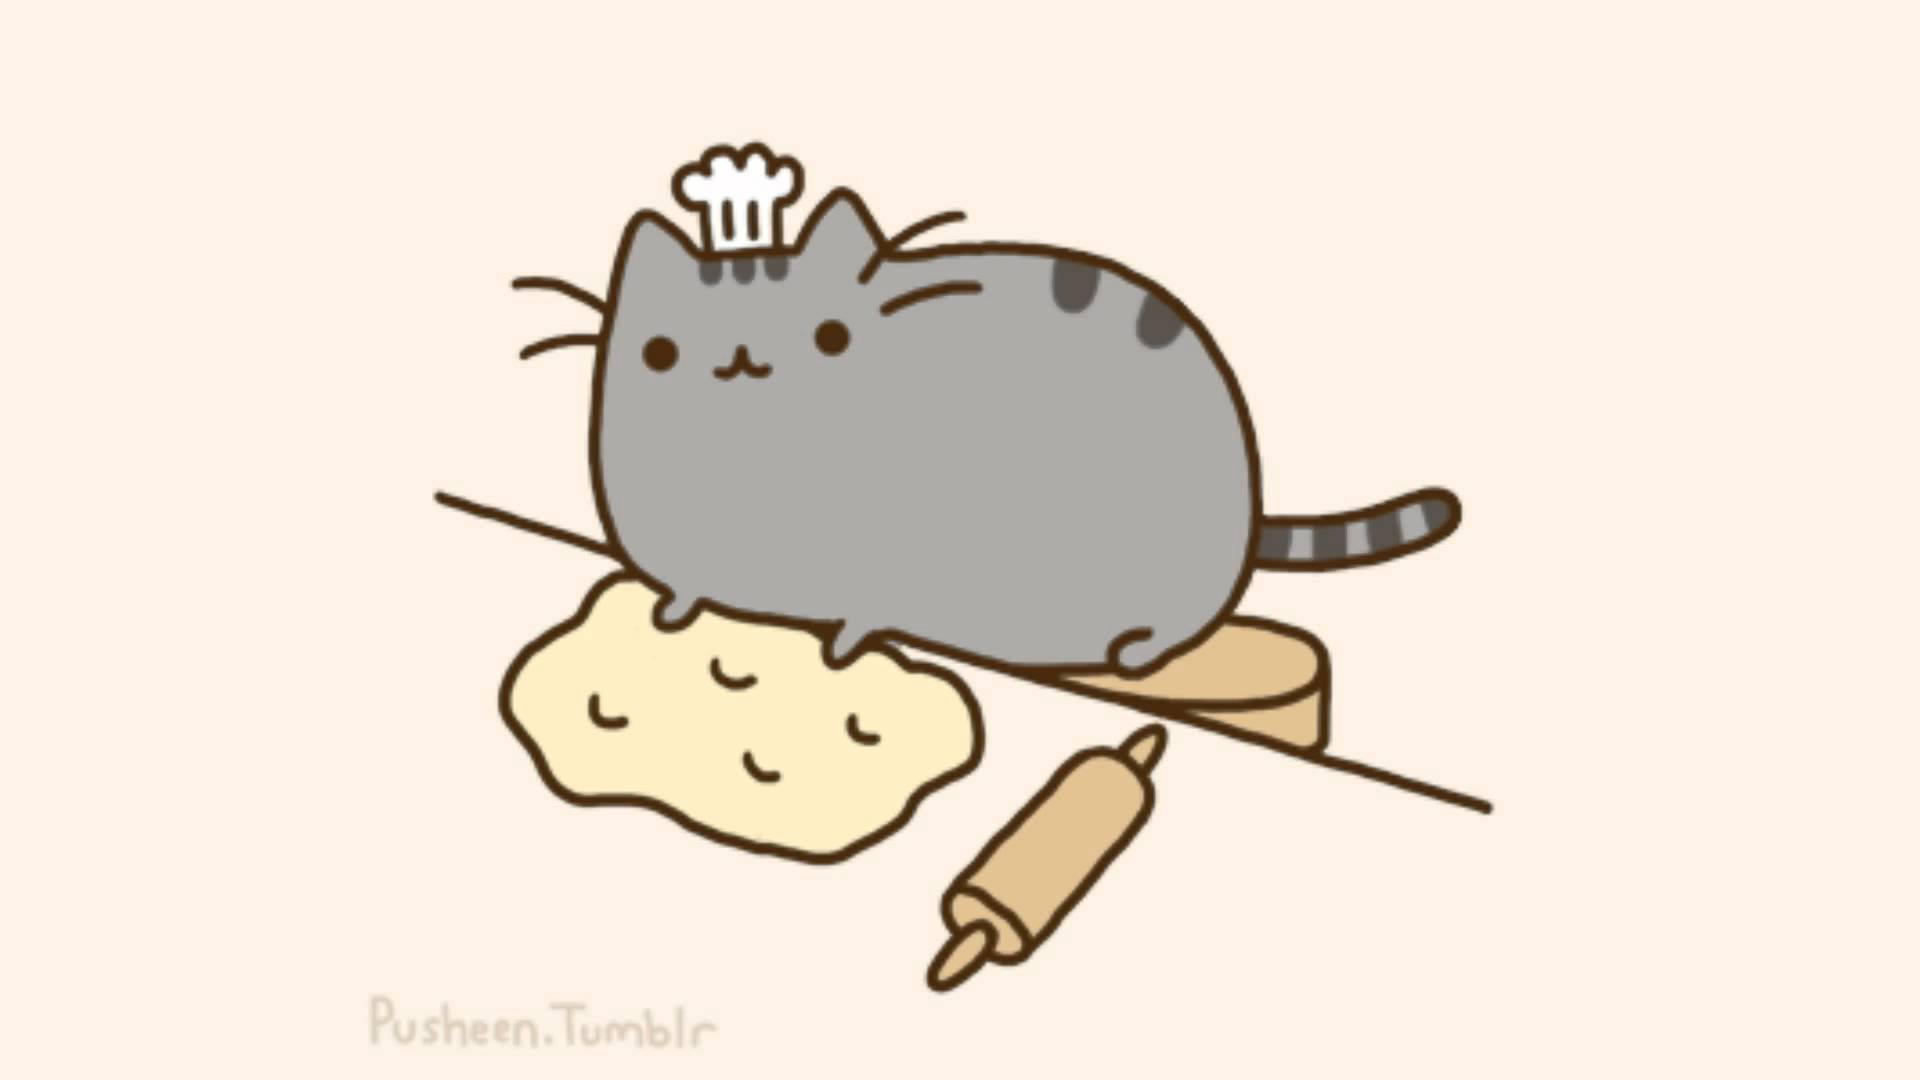 Pusheen The Cat Background Images Pictures   Becuo 1920x1080